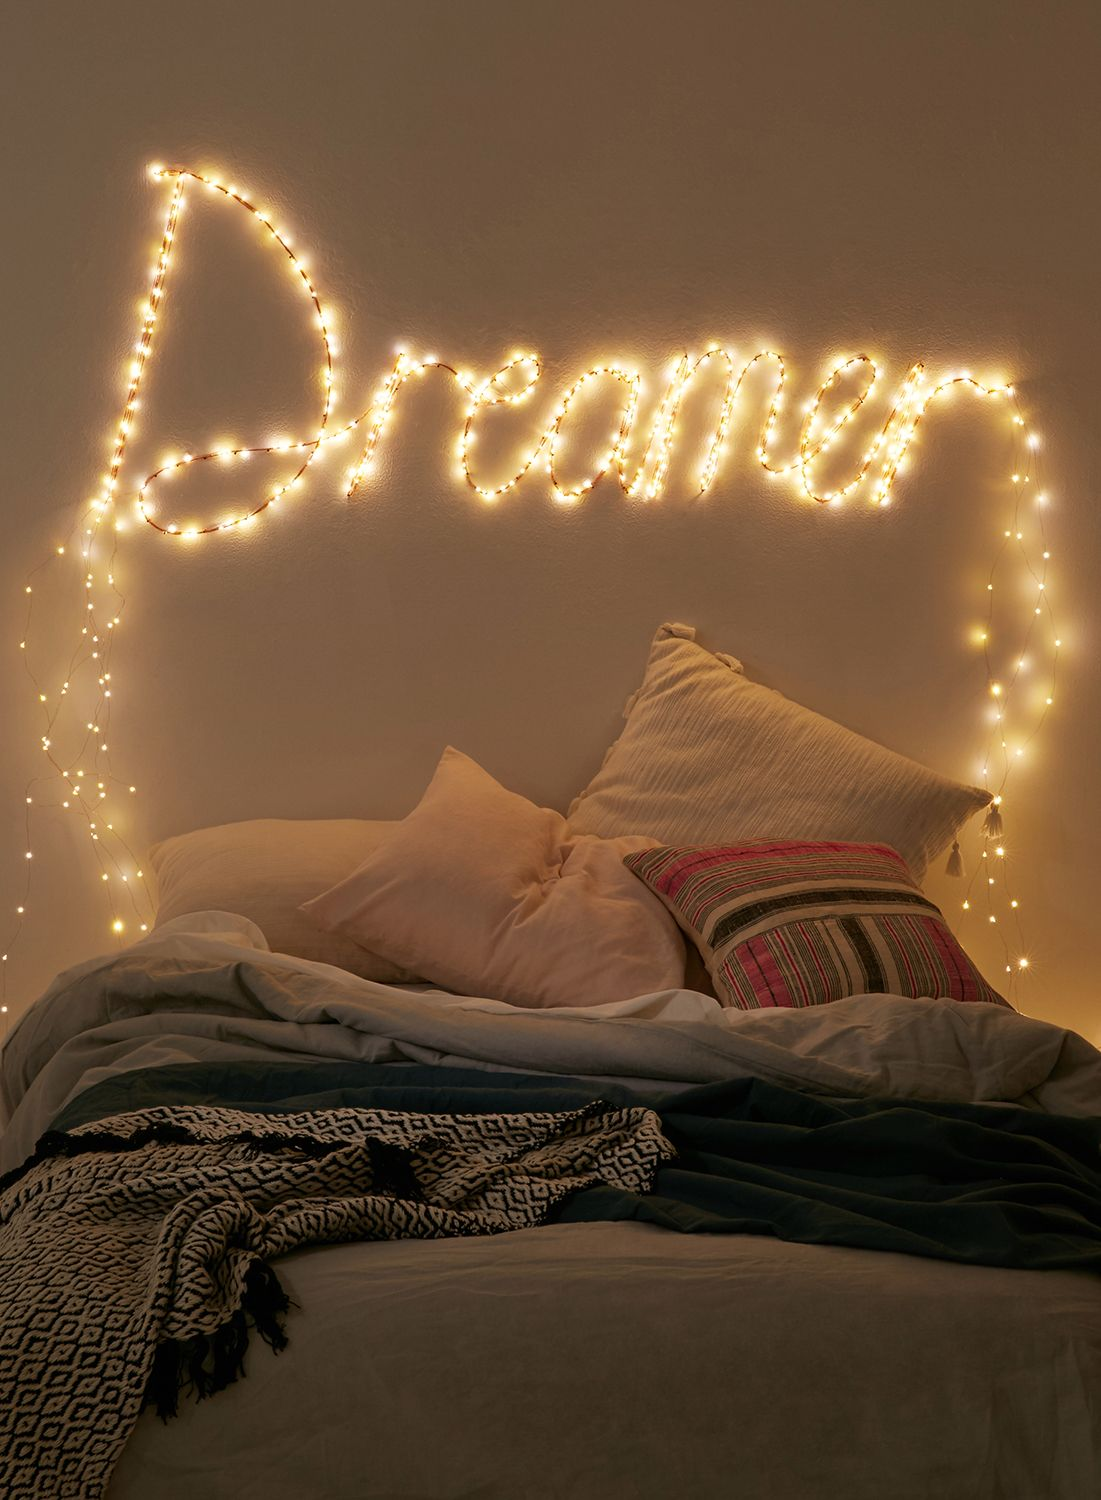 Decorative lights for dorm room - See Our Best Ideas For Every Room